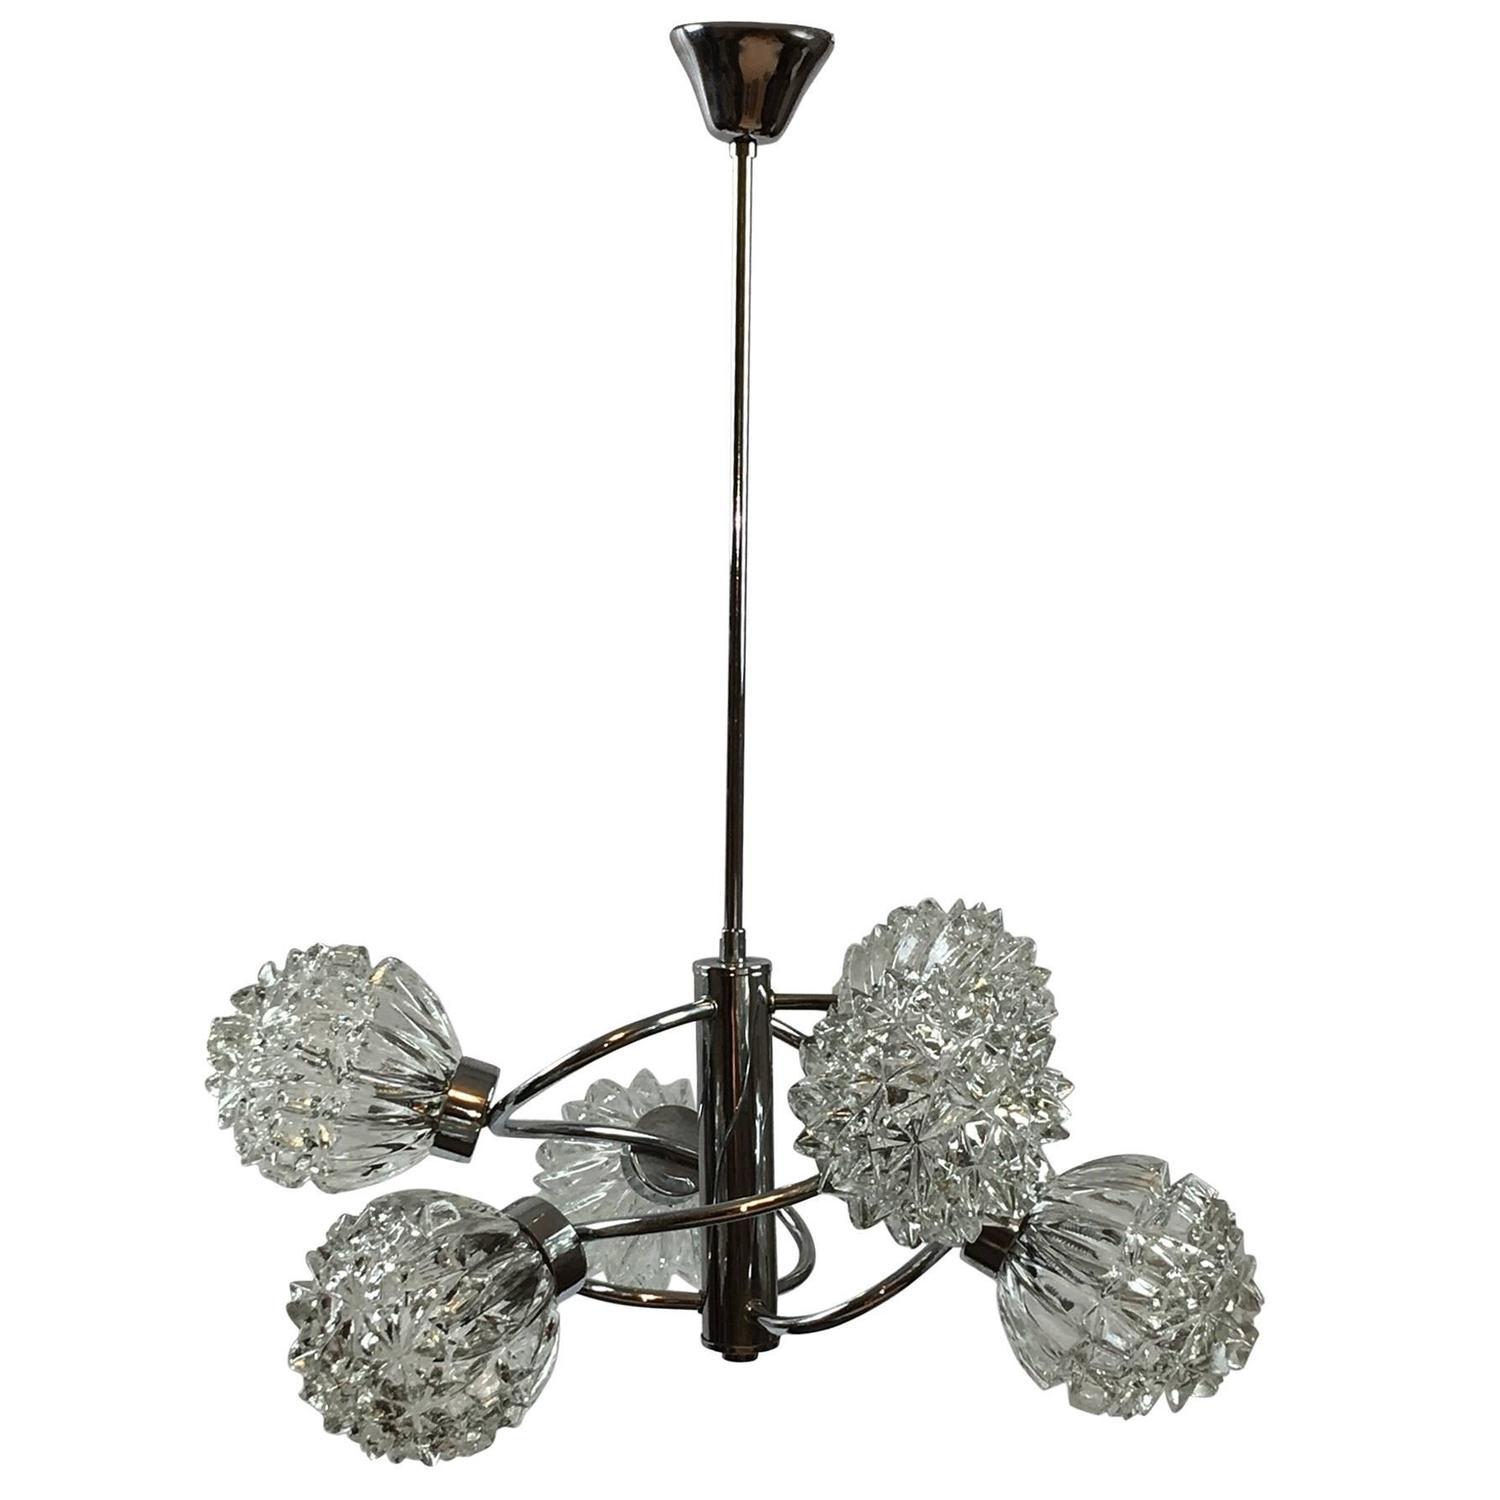 Stunning 12 Arm Sputnik Chandelier by Richard Essig Germany